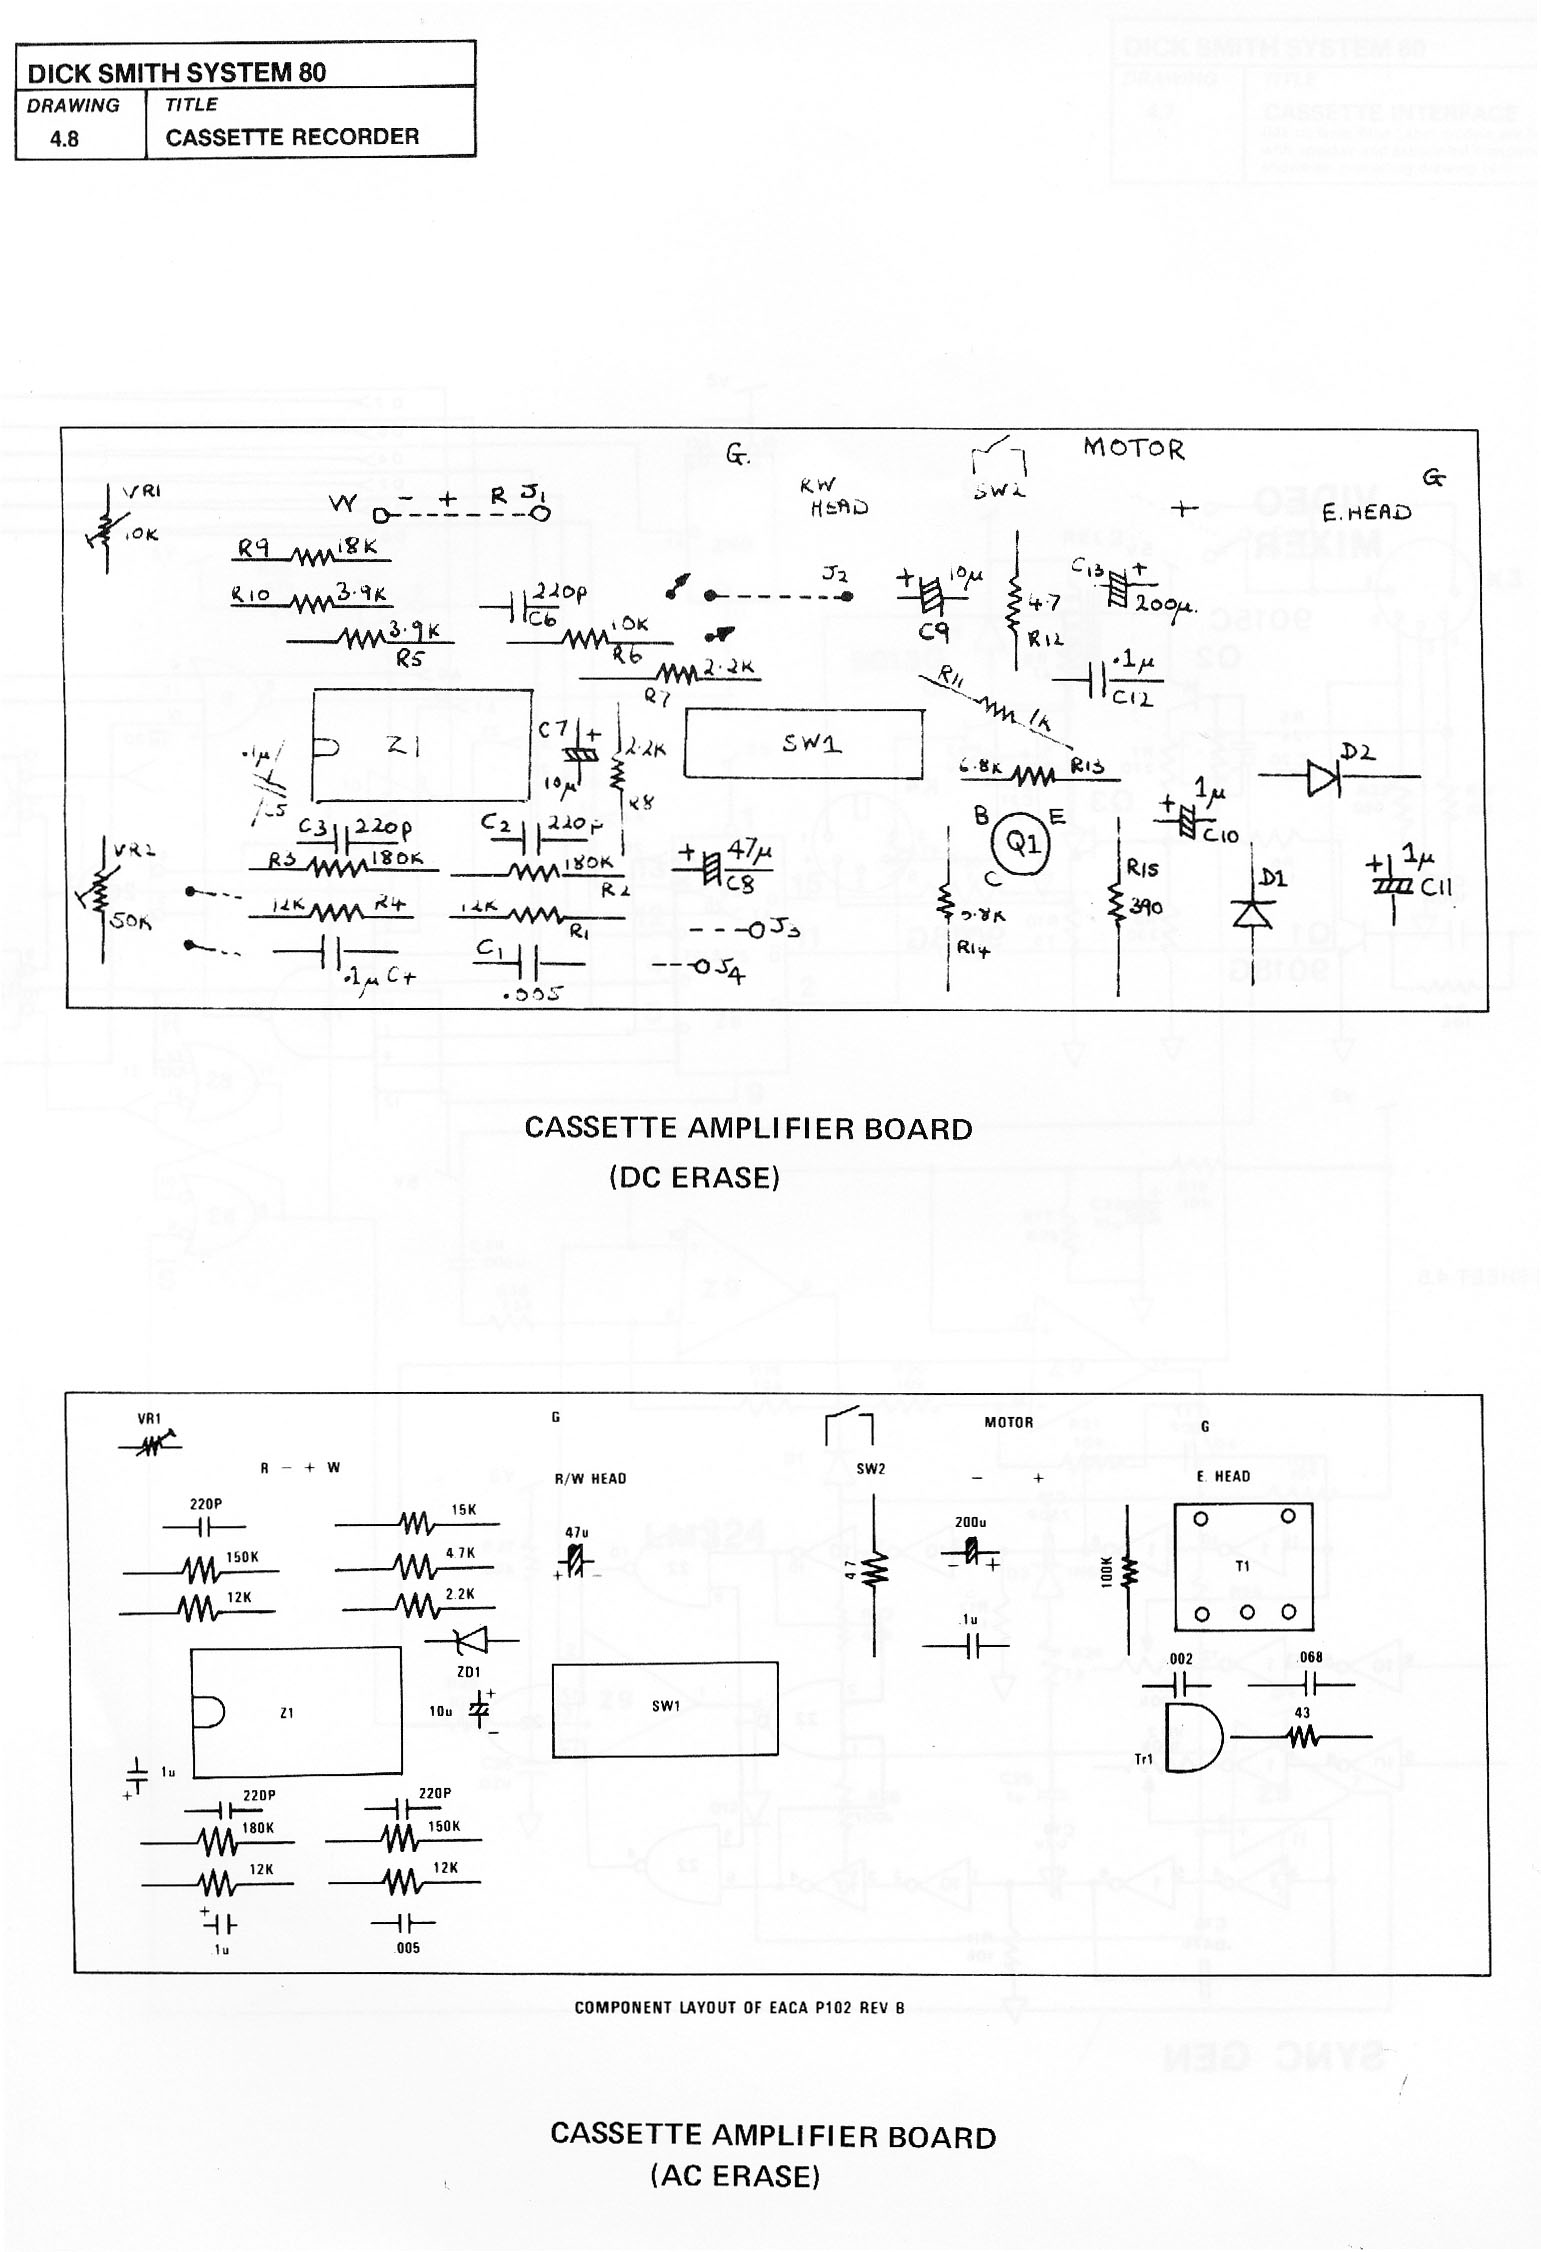 hight resolution of in the manual the circuit diagram was larger clearer and somehow seemed more authoritative